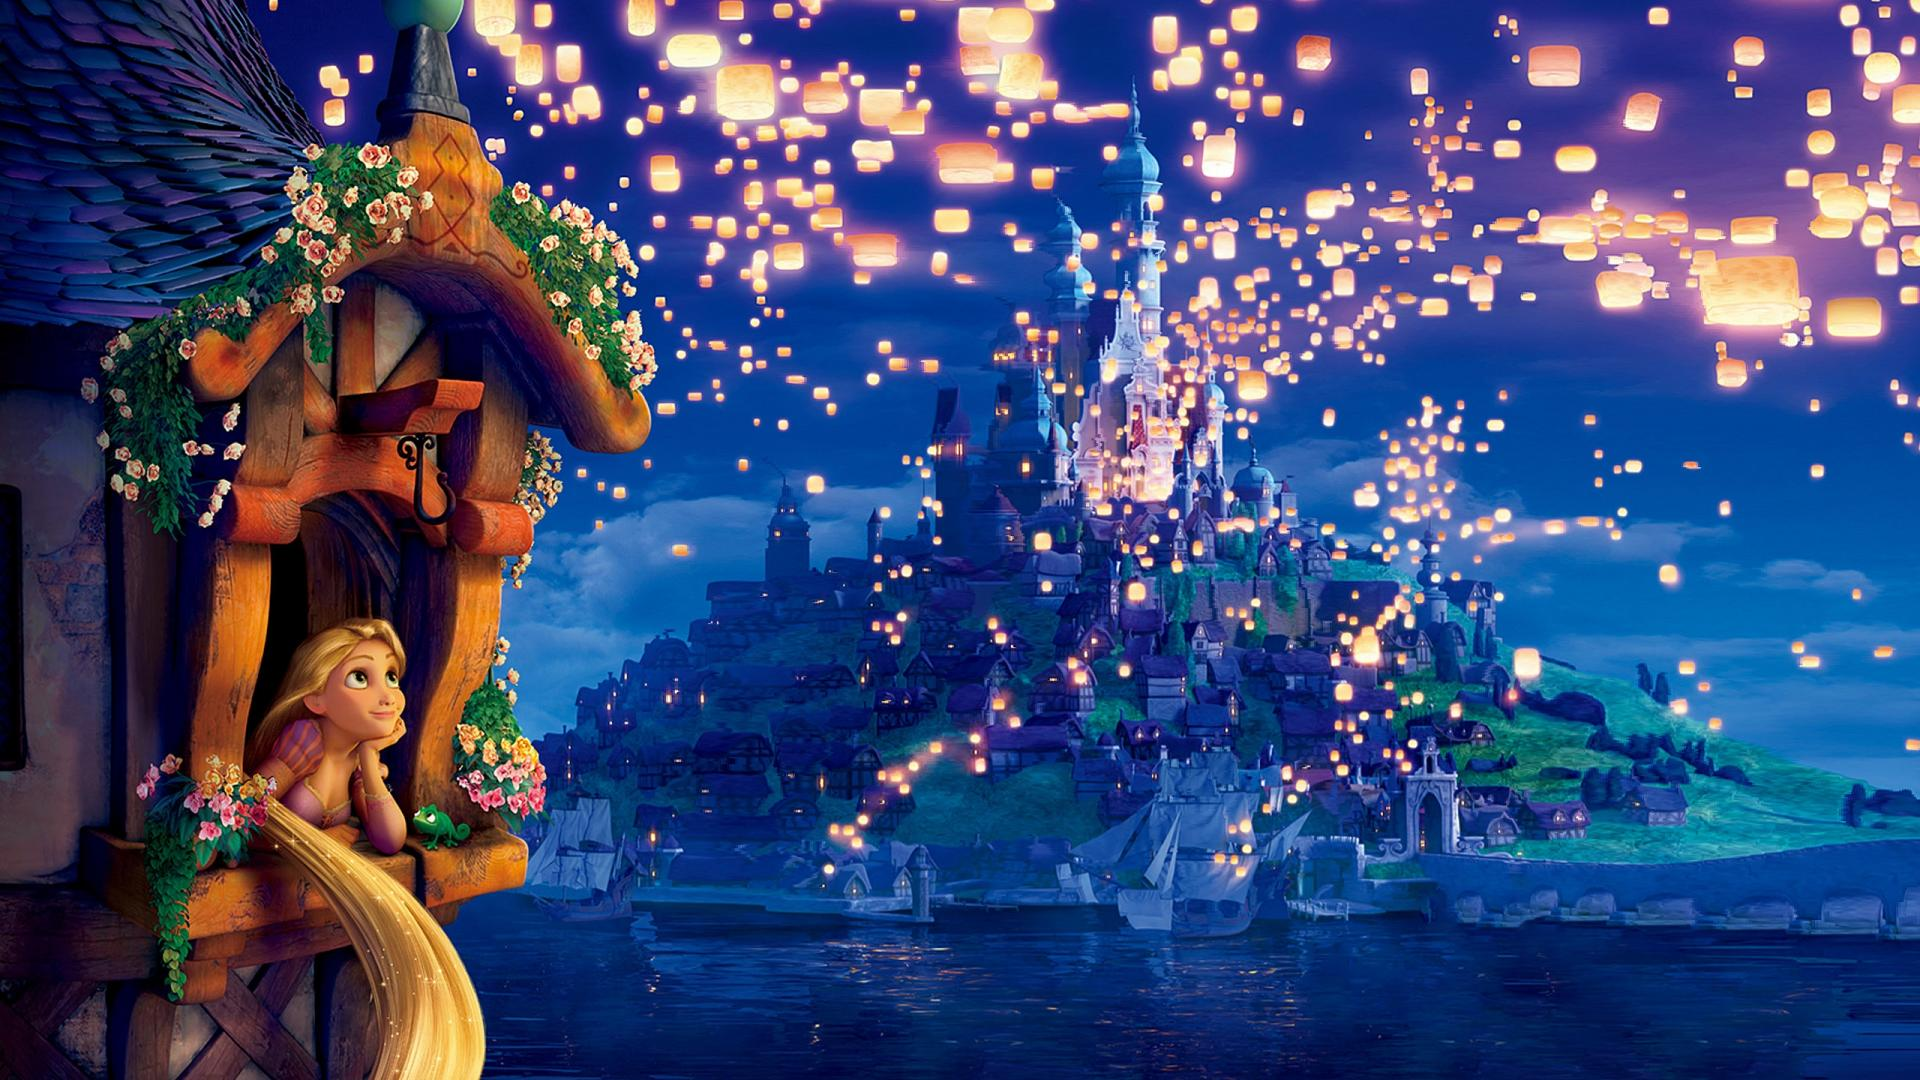 Tangled Hd Images 720p Hd Tangled I See The Light Complete Lantern